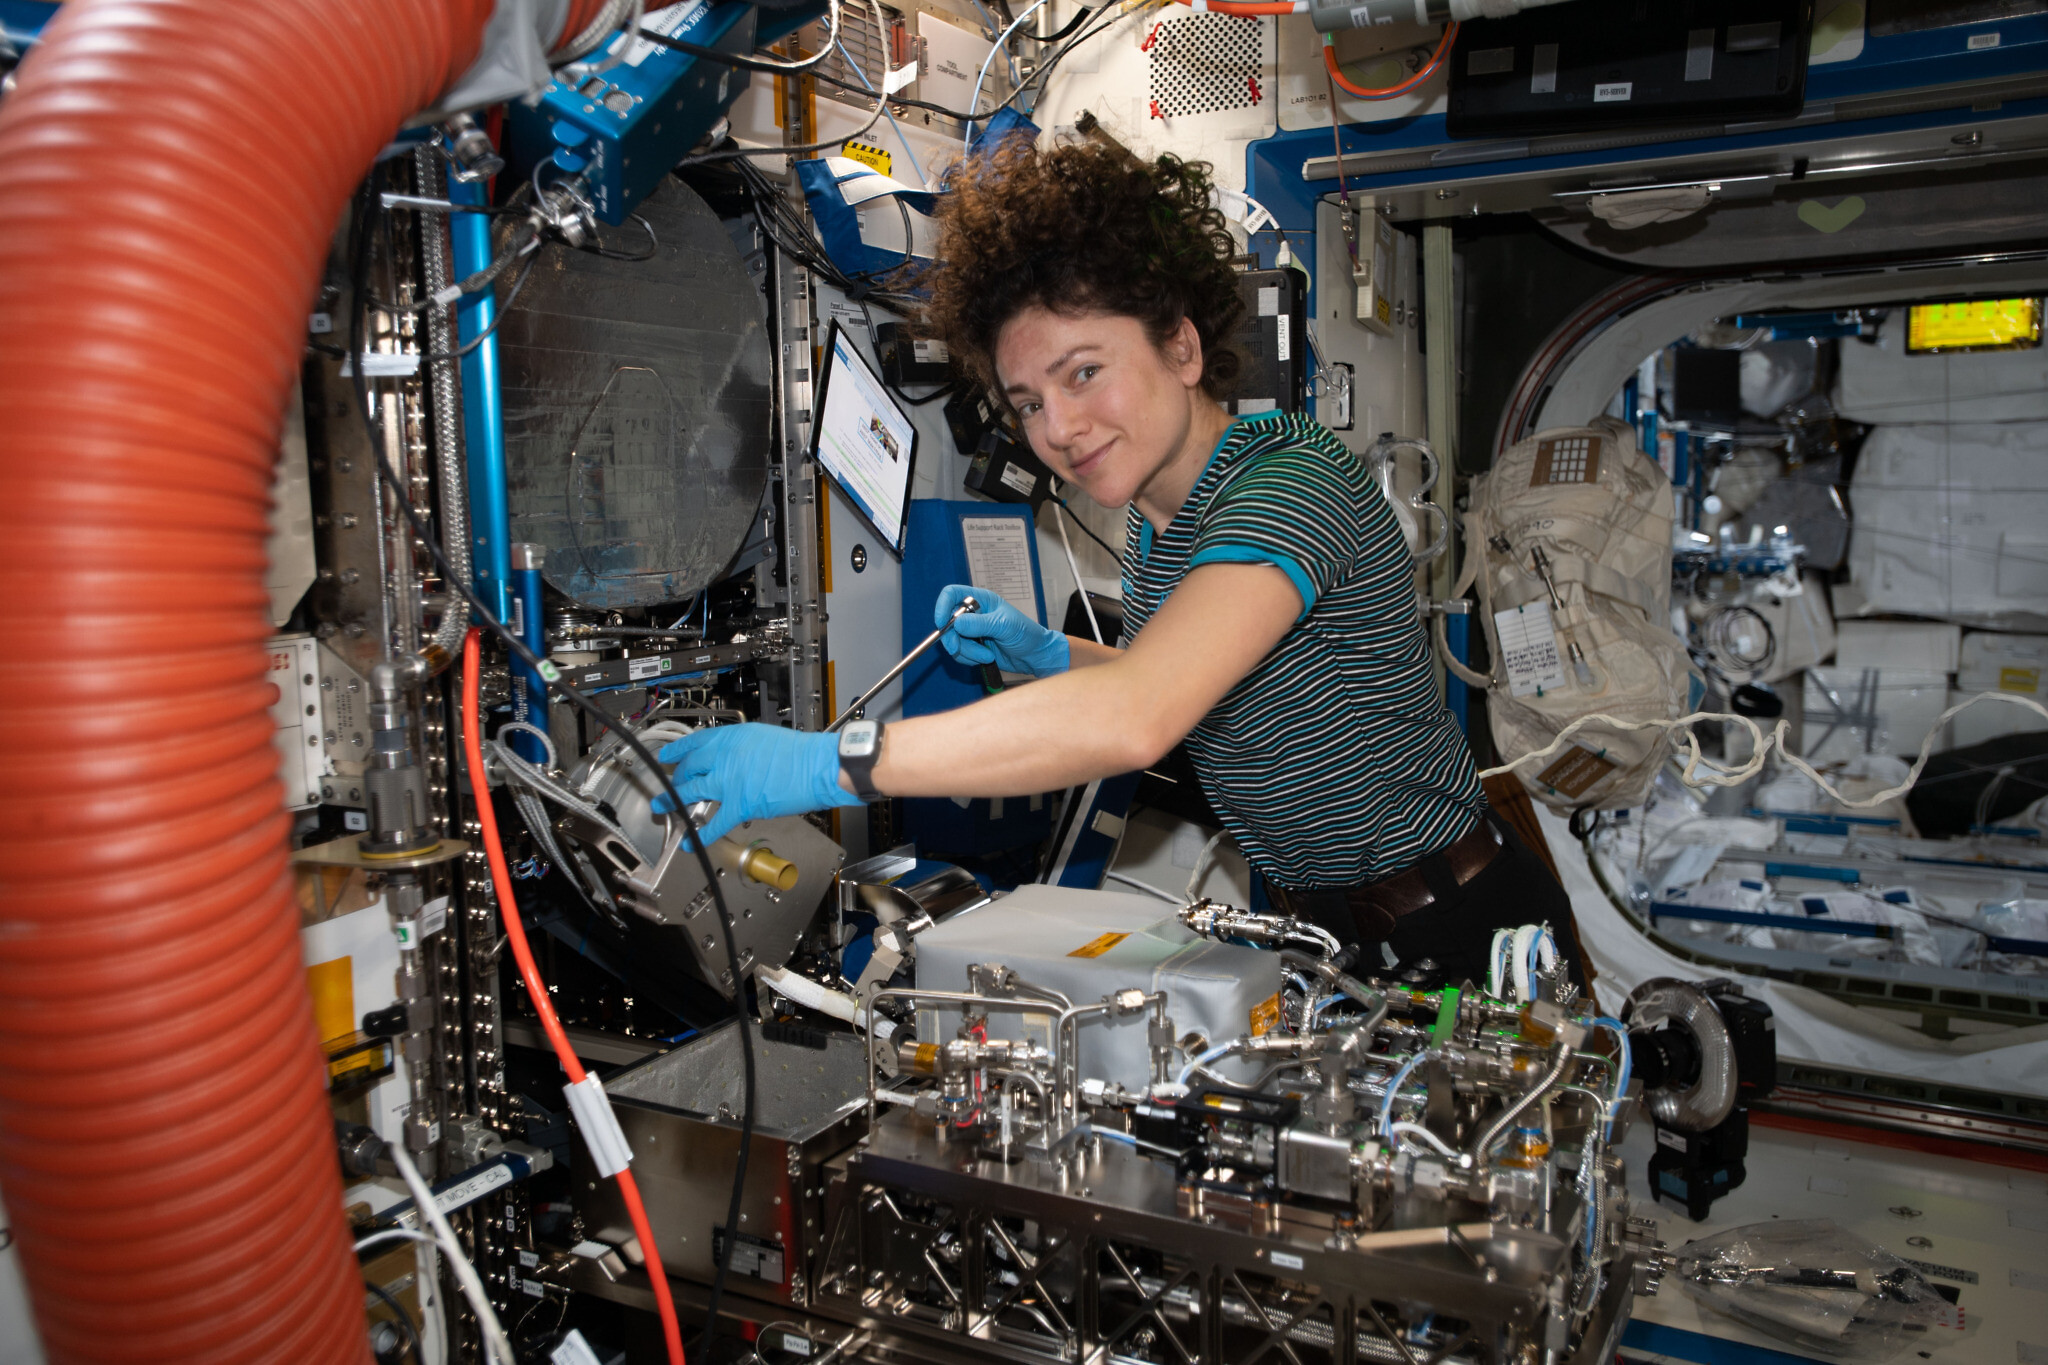 NASA astronaut Jessica Meir working with technical hardware on the ISS. (NASA)